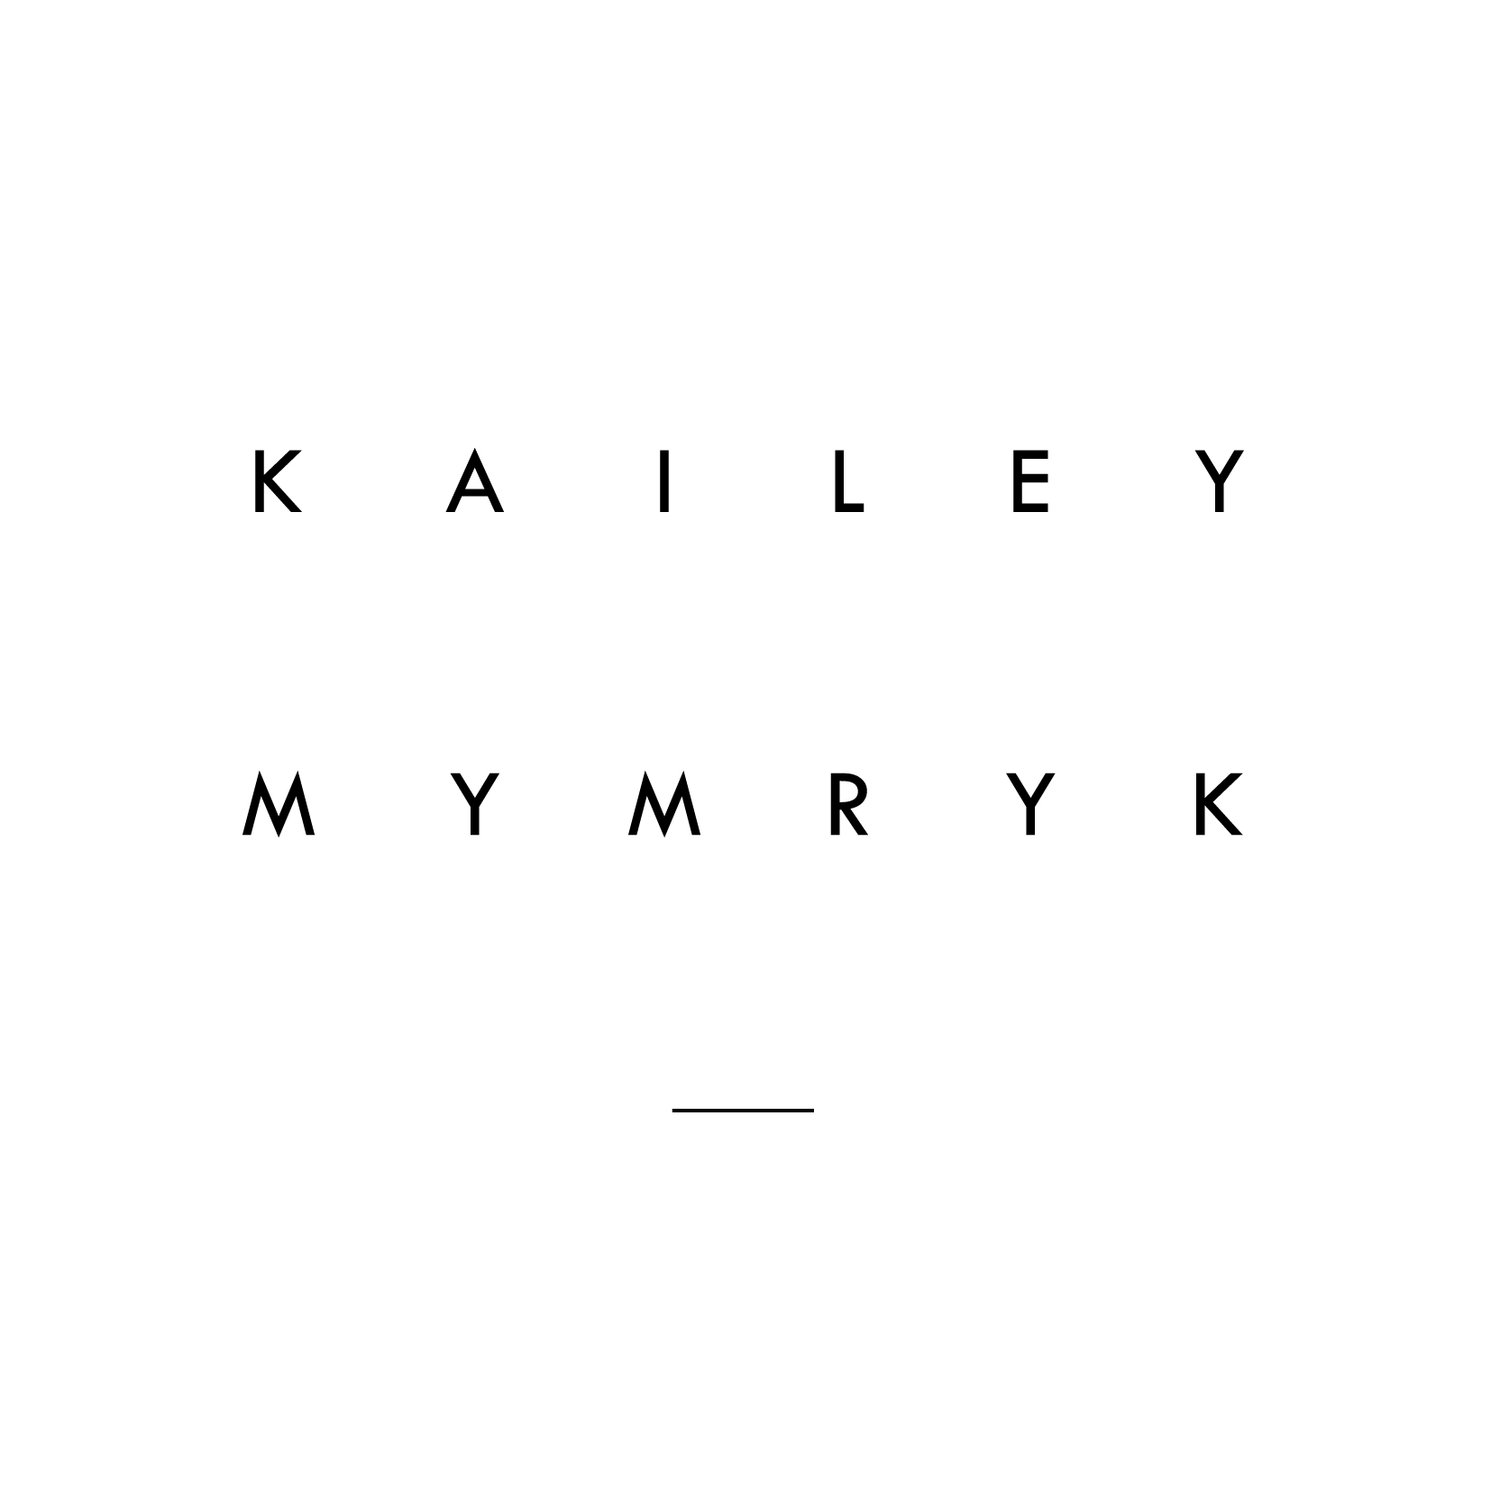 KAILEY MYMRYK